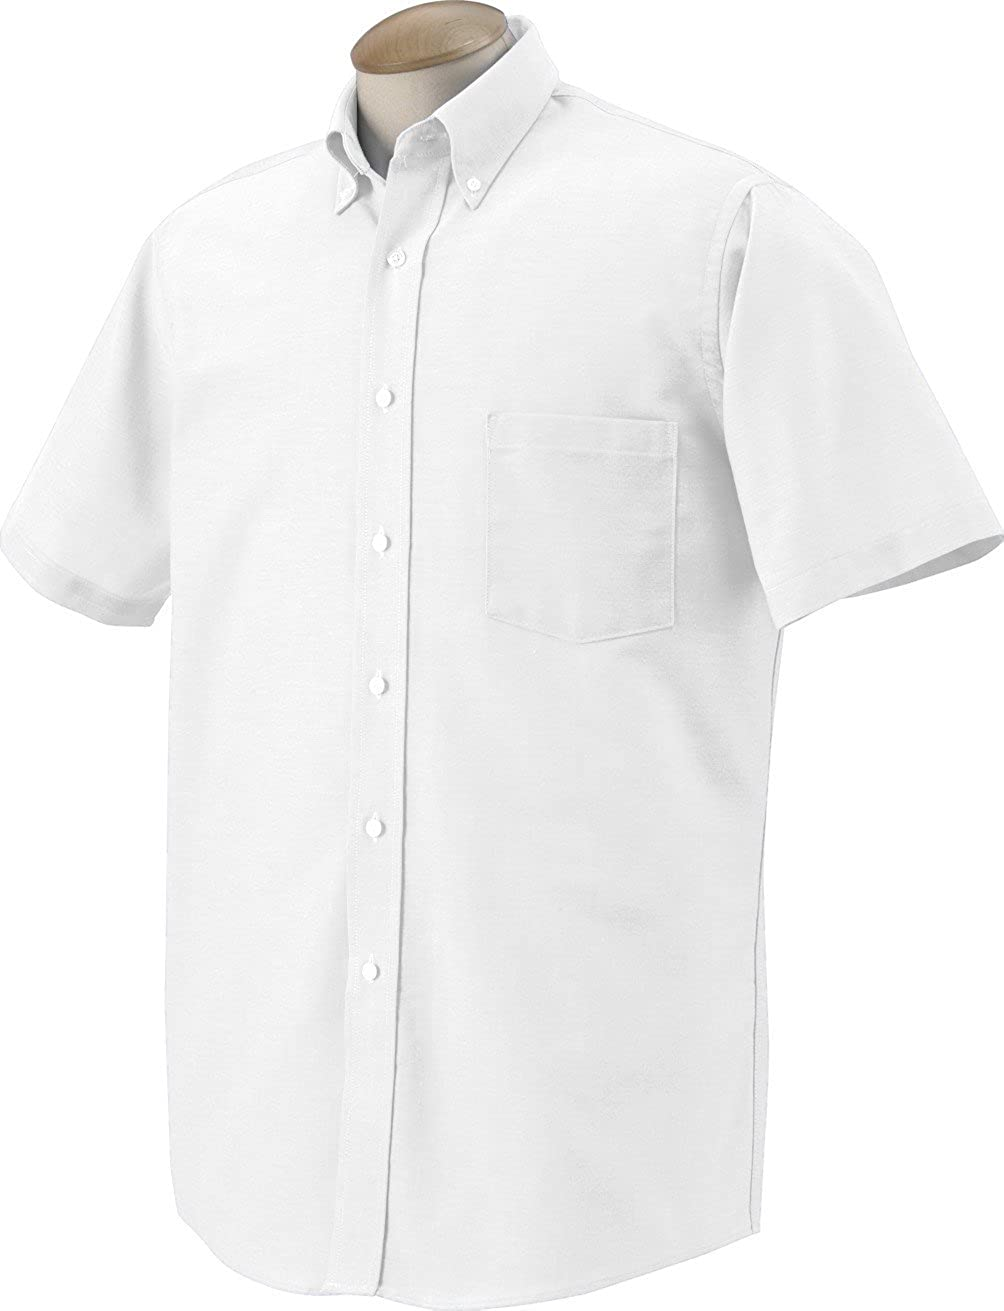 Van Heusen Mens Dress Shirts Short Sleeve Oxford Solid Button Down ...